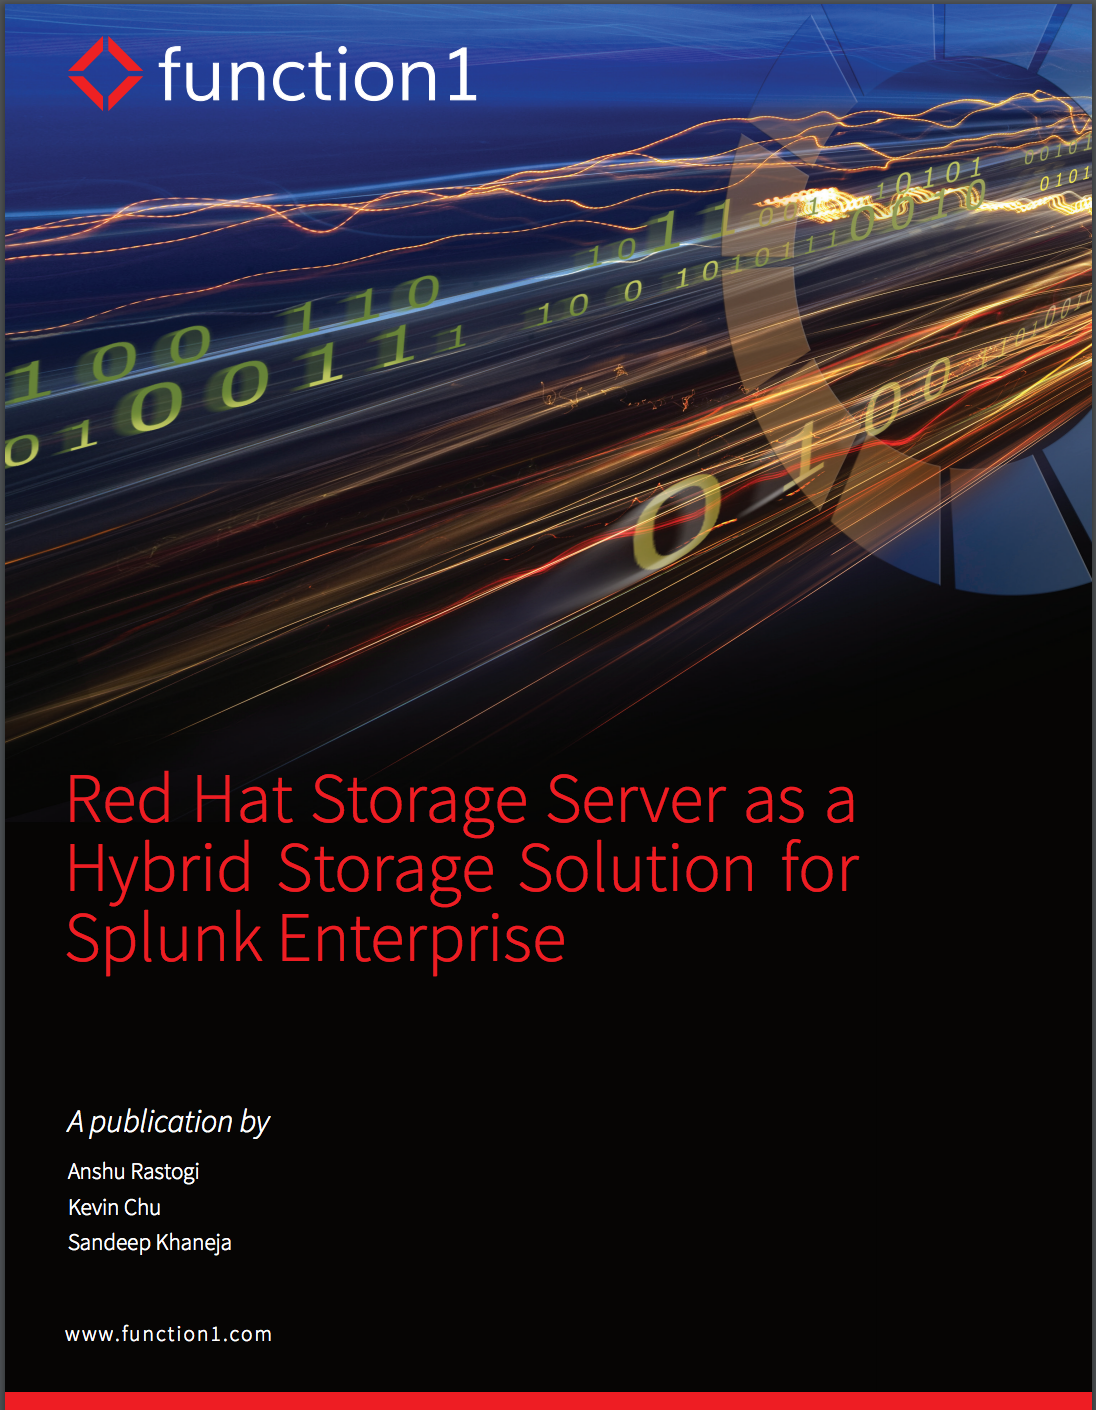 Red Hat Storage Server as a Hybrid Storage Solution for Splunk Enterprise